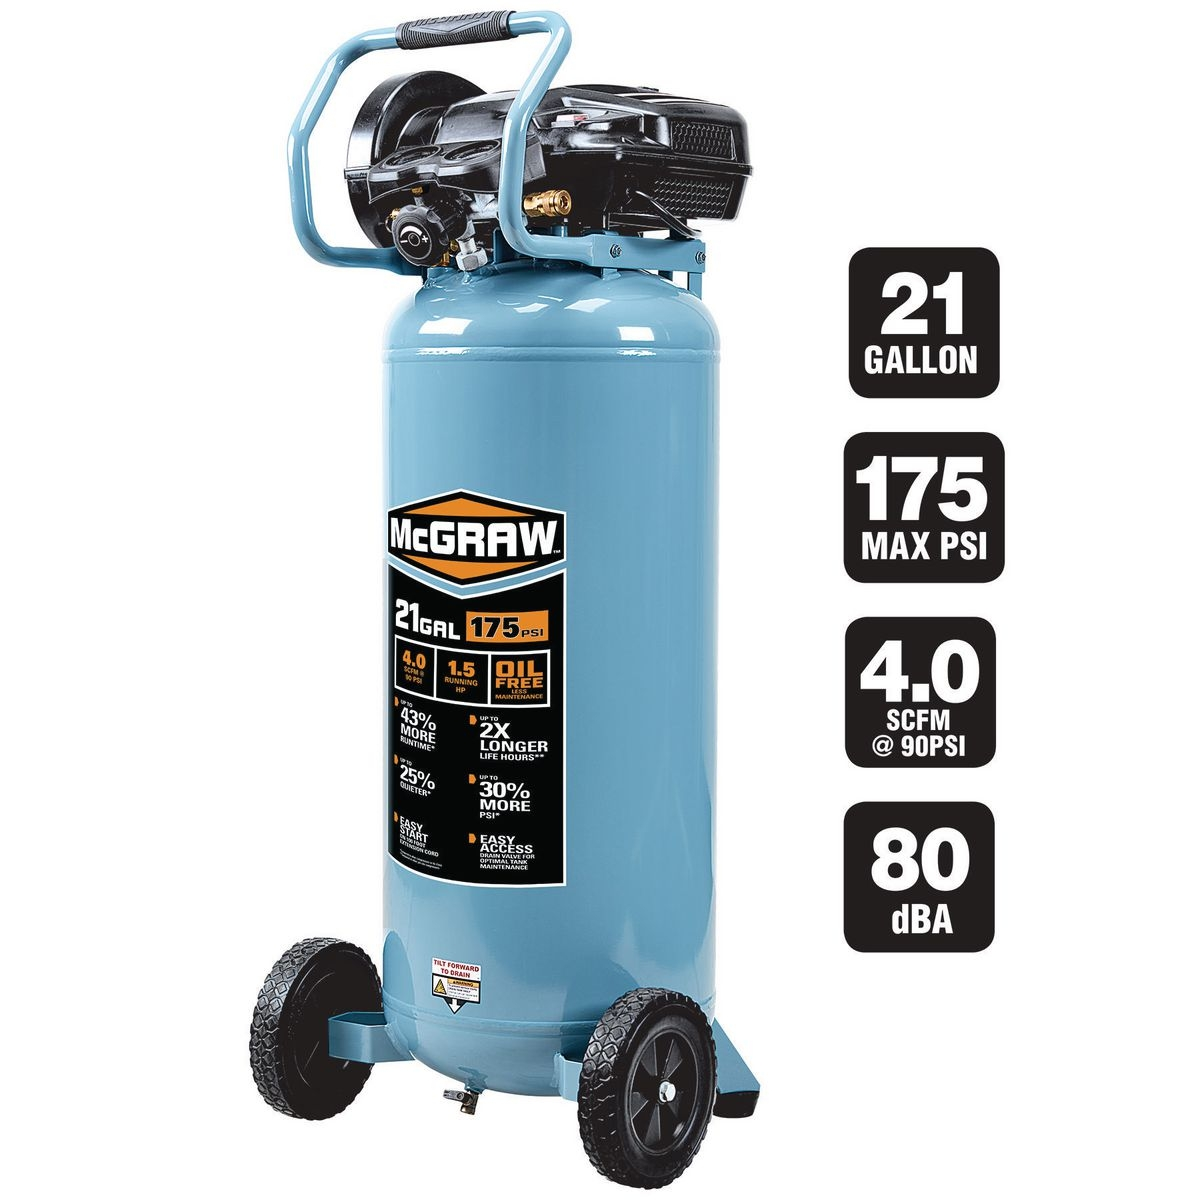 Search for Air Compressor Coupons